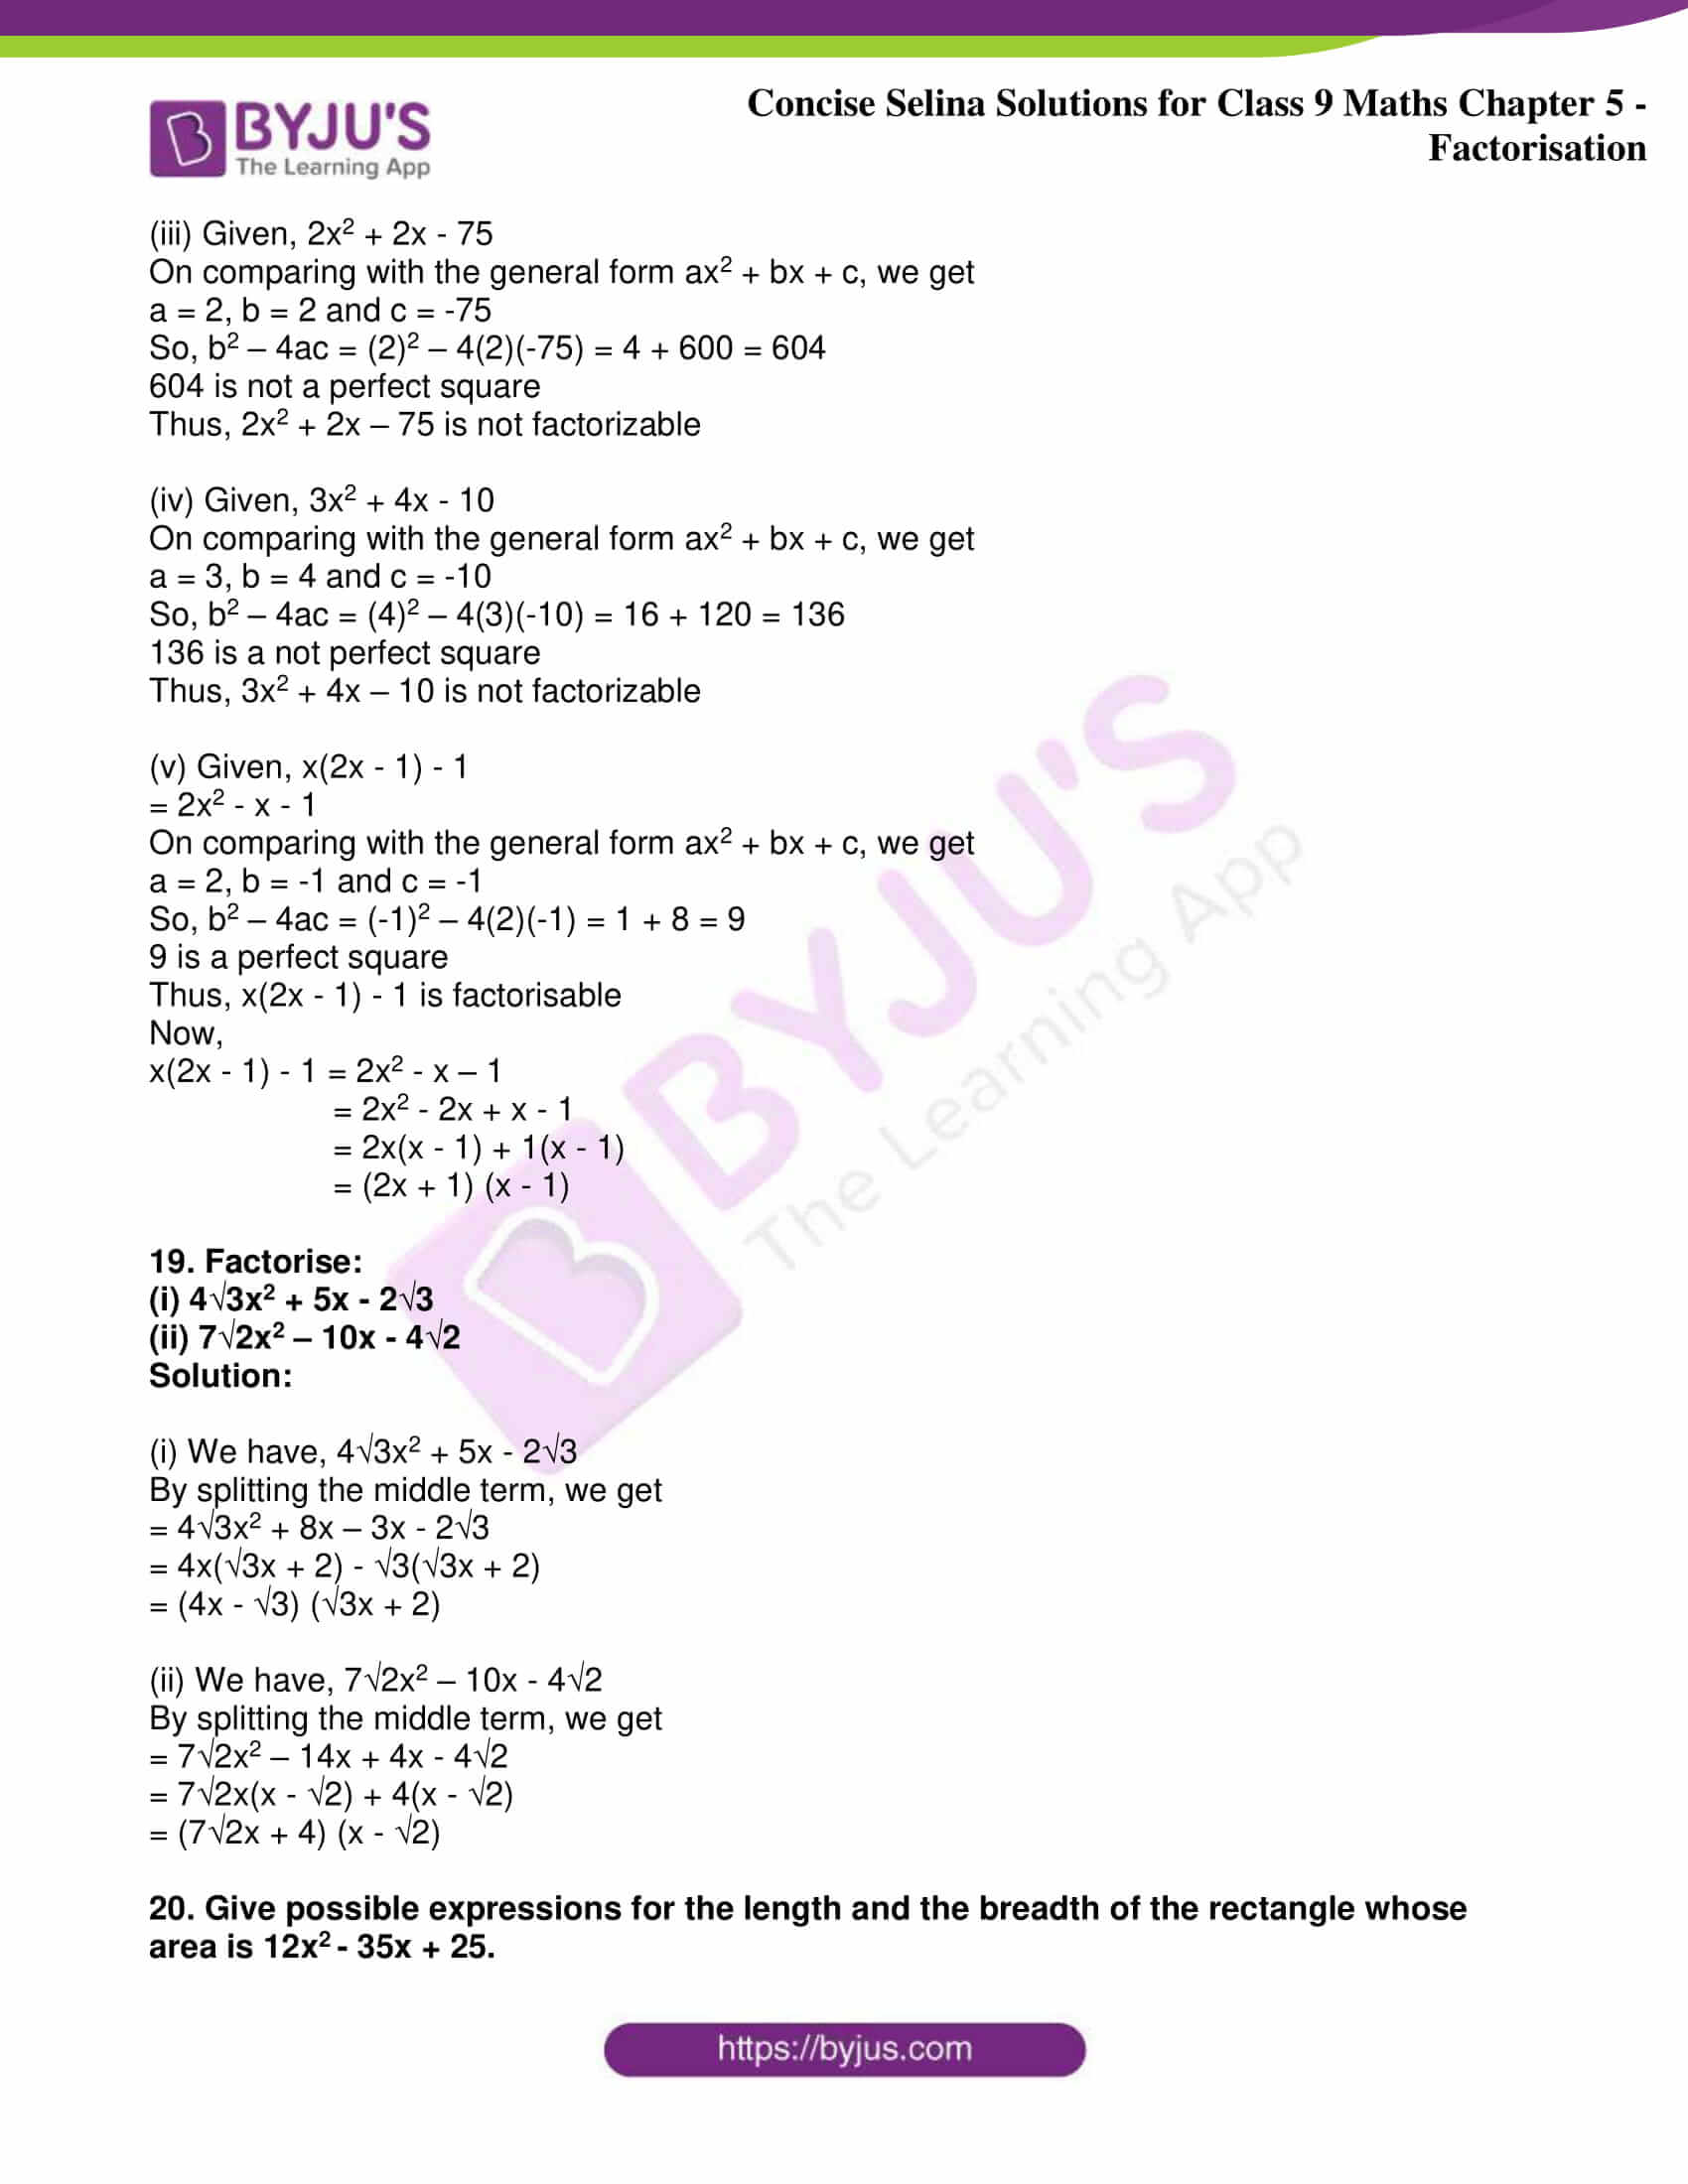 icse class 9 maths may10 selina solutions chapter 5 factorisation 11